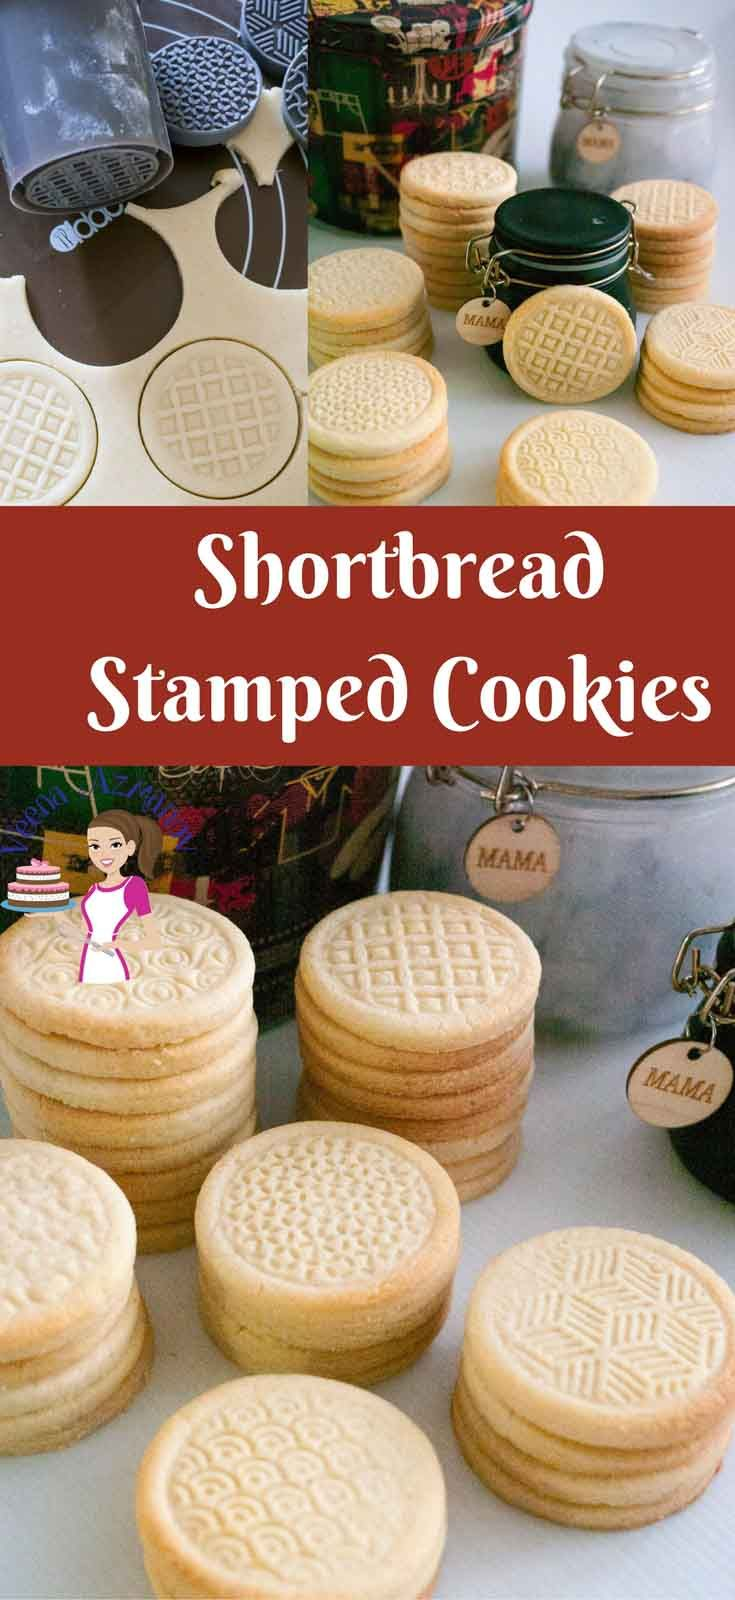 These shortbread stamped cookies are buttery and with a soft crumb that almost melt in the mouth. They are simple and easy to make so they are great when you need an afternoon tea cookie or if you want to gift them as festive treats | Veenaazmanov